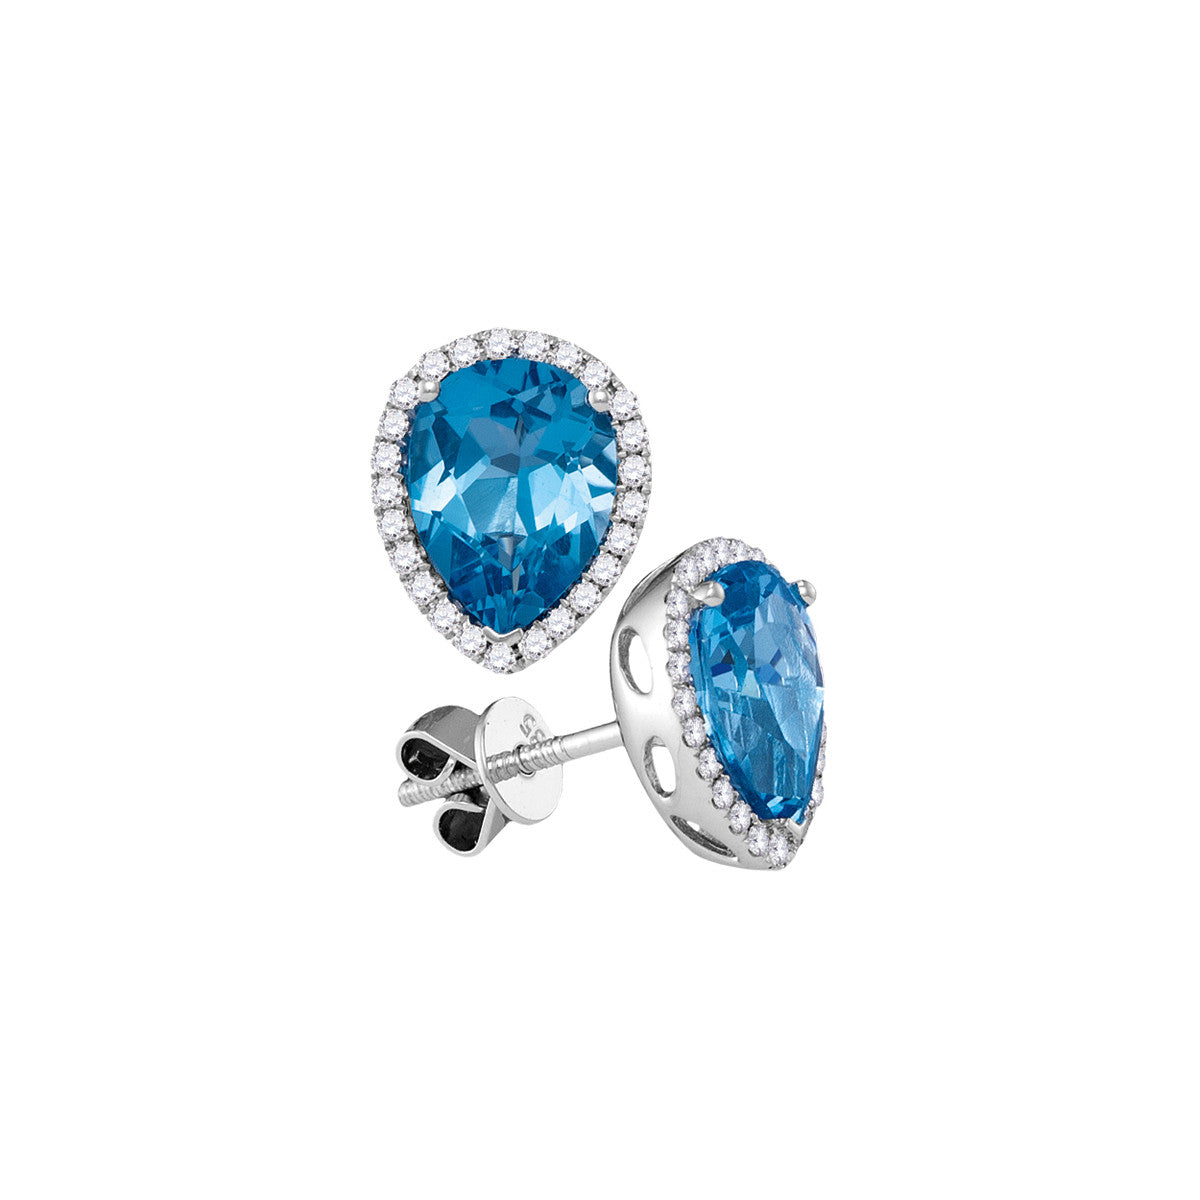 14kt White Gold Womens Pear Blue Topaz Solitaire Diamond Frame Stud Earrings 1-3/4 Cttw 105016 - shirin-diamonds